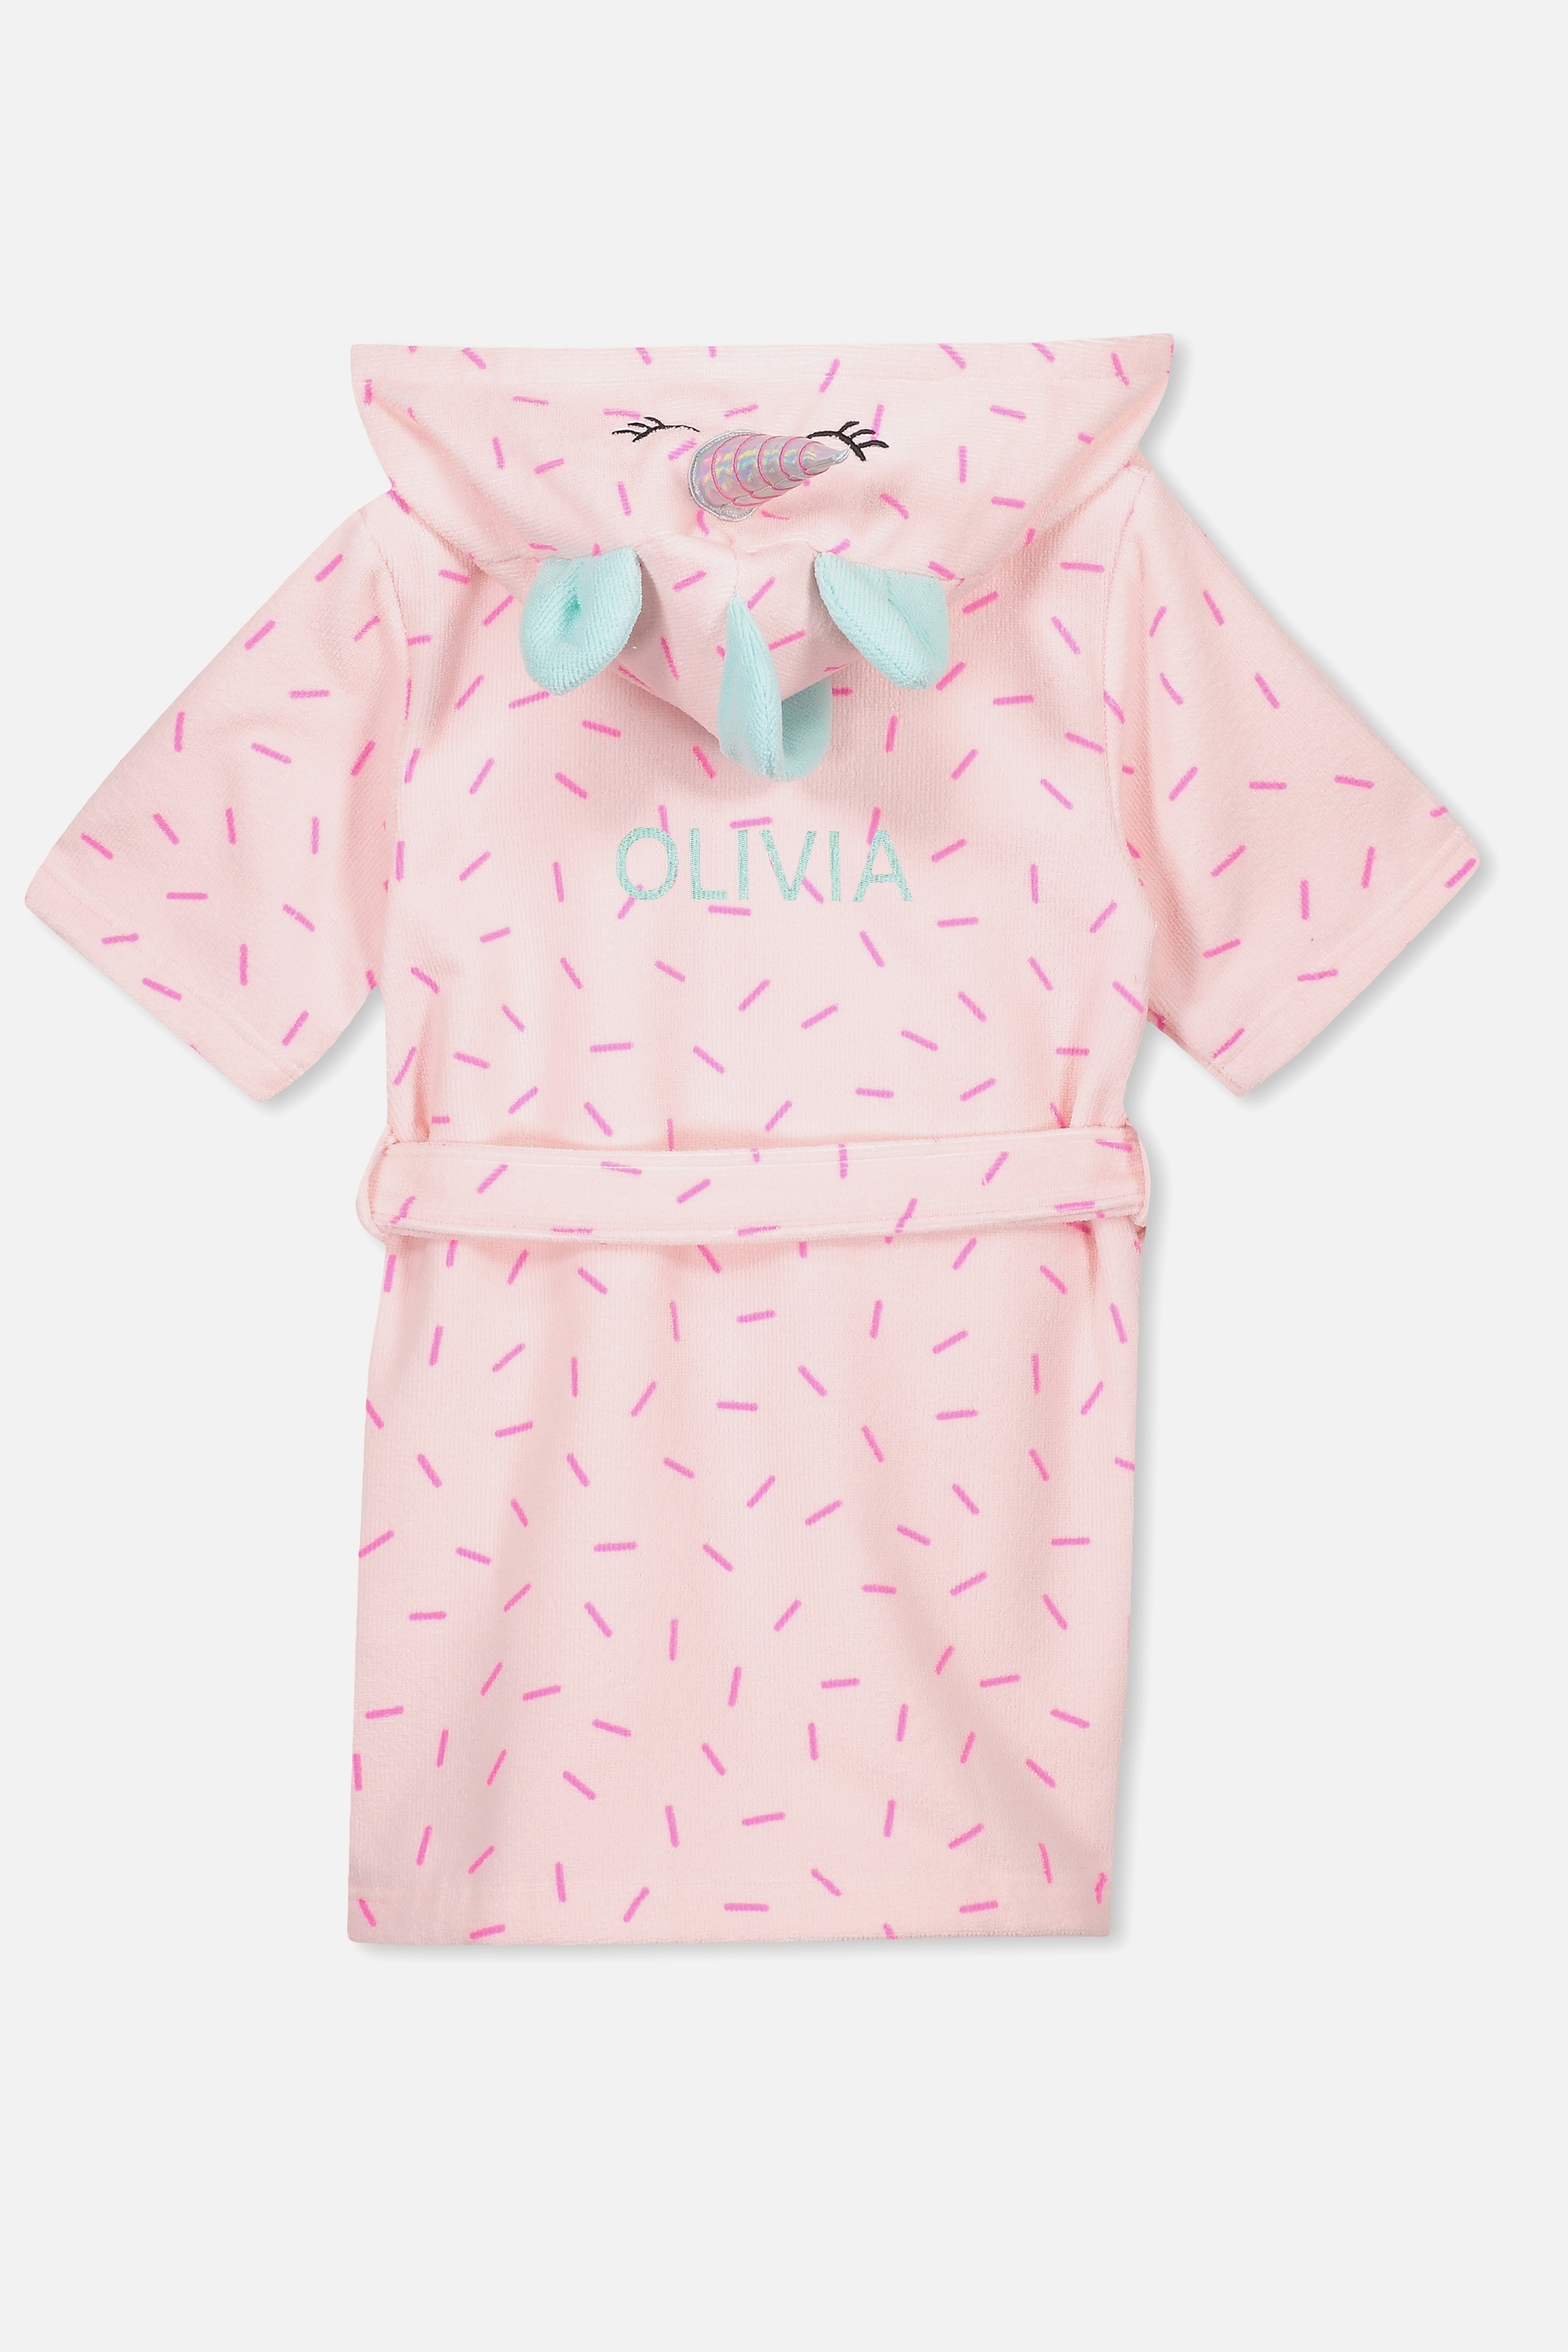 8a864b32d65c7 Personalised Girls Hooded Terry Gown, SPECKLED UNICORN PERSONALISED